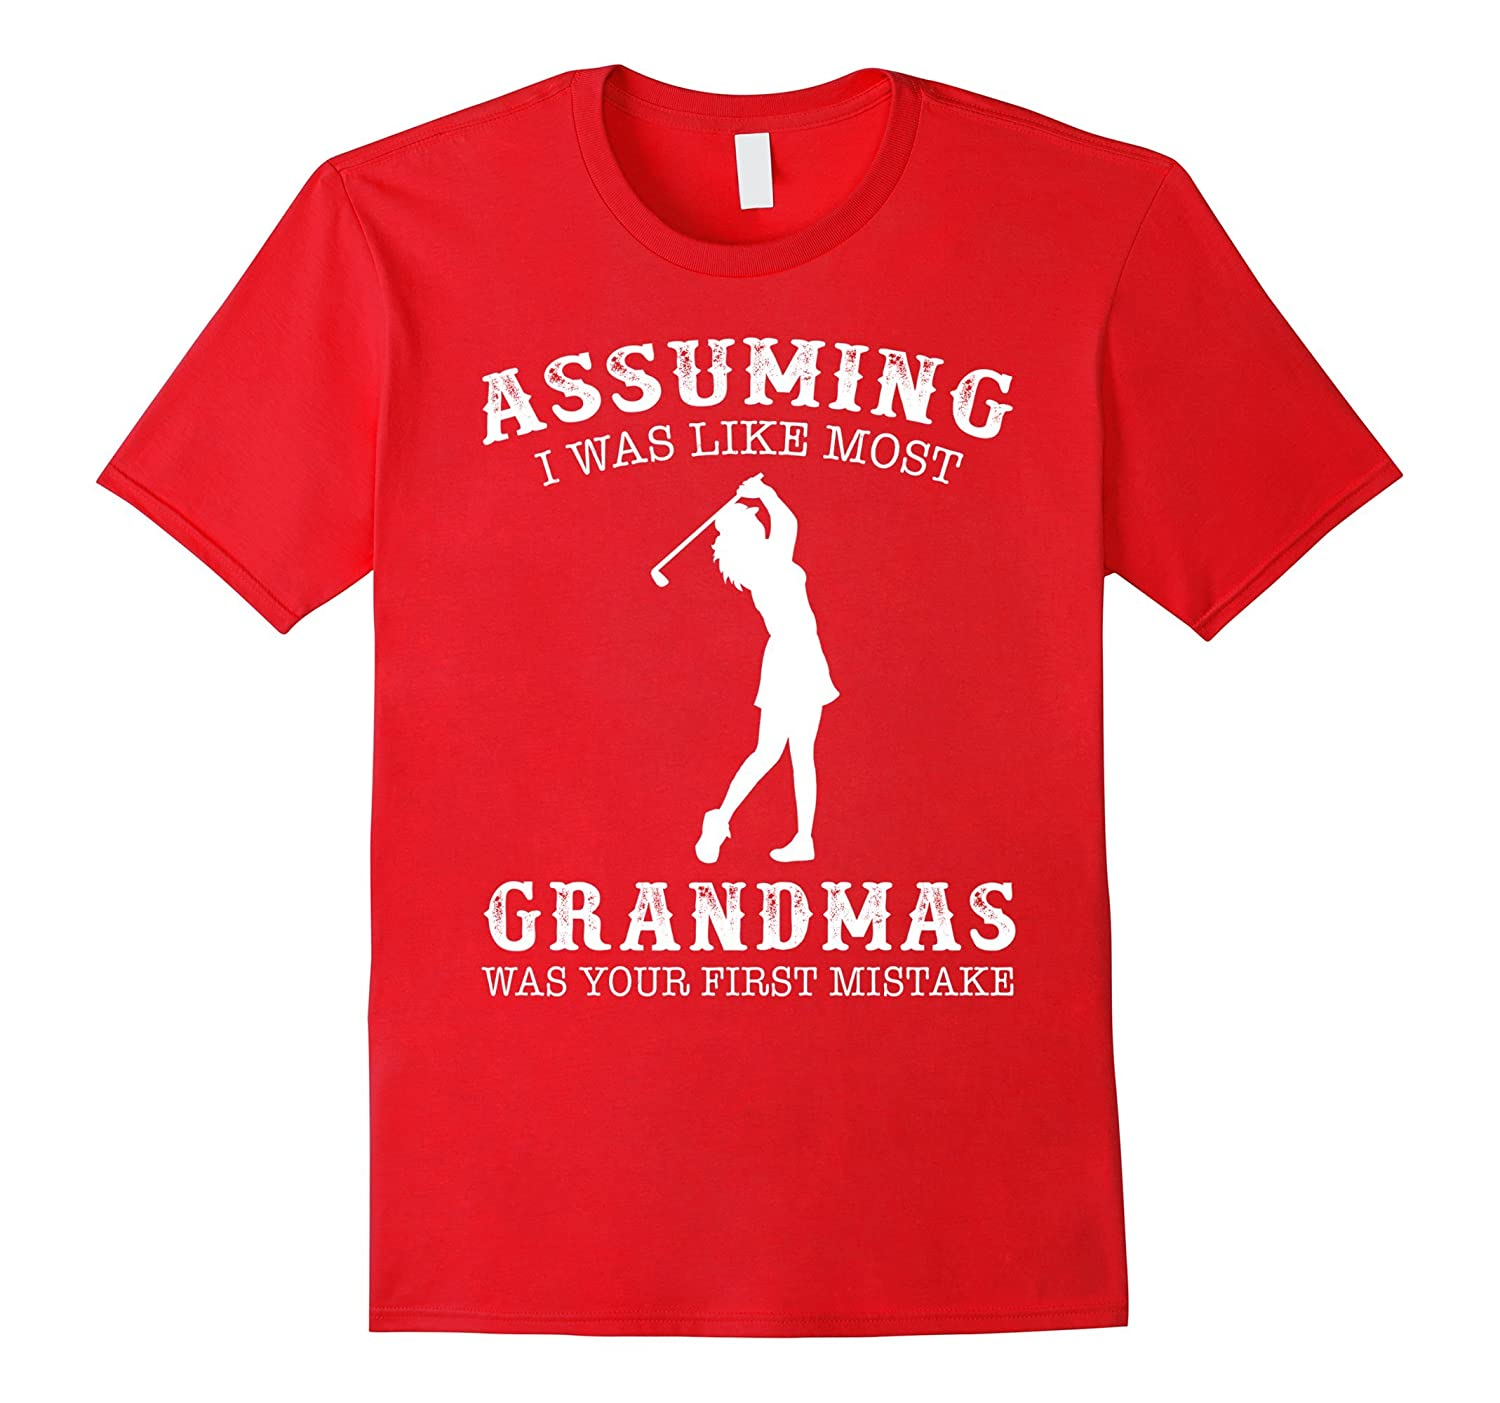 Assuming i was like most grandmas first mistake - Golfing-TH